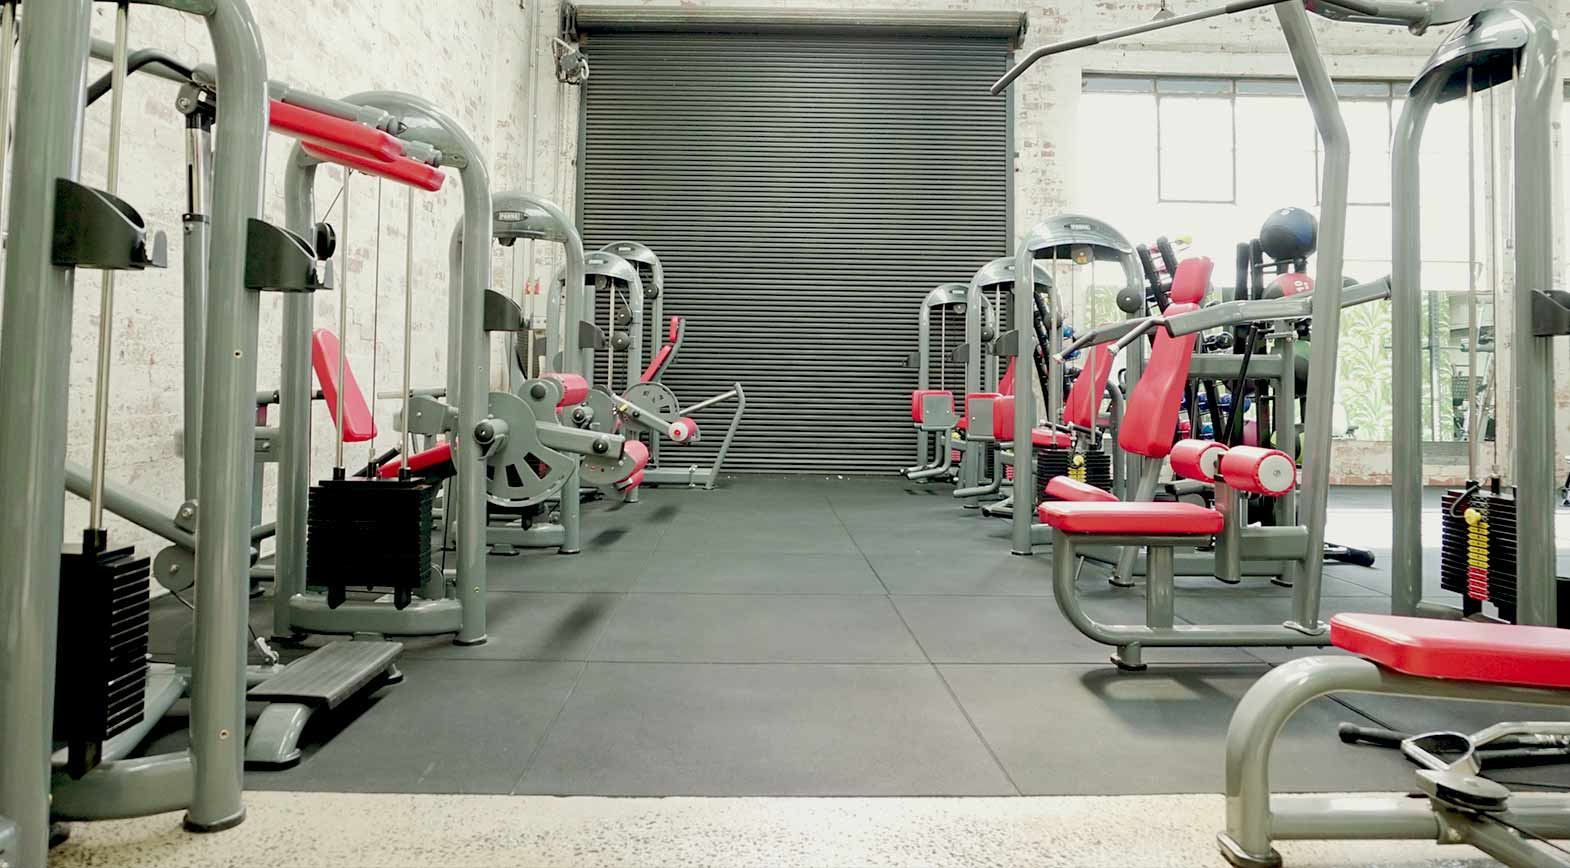 dukes gym richmond womens only machine weights pin loaded machines